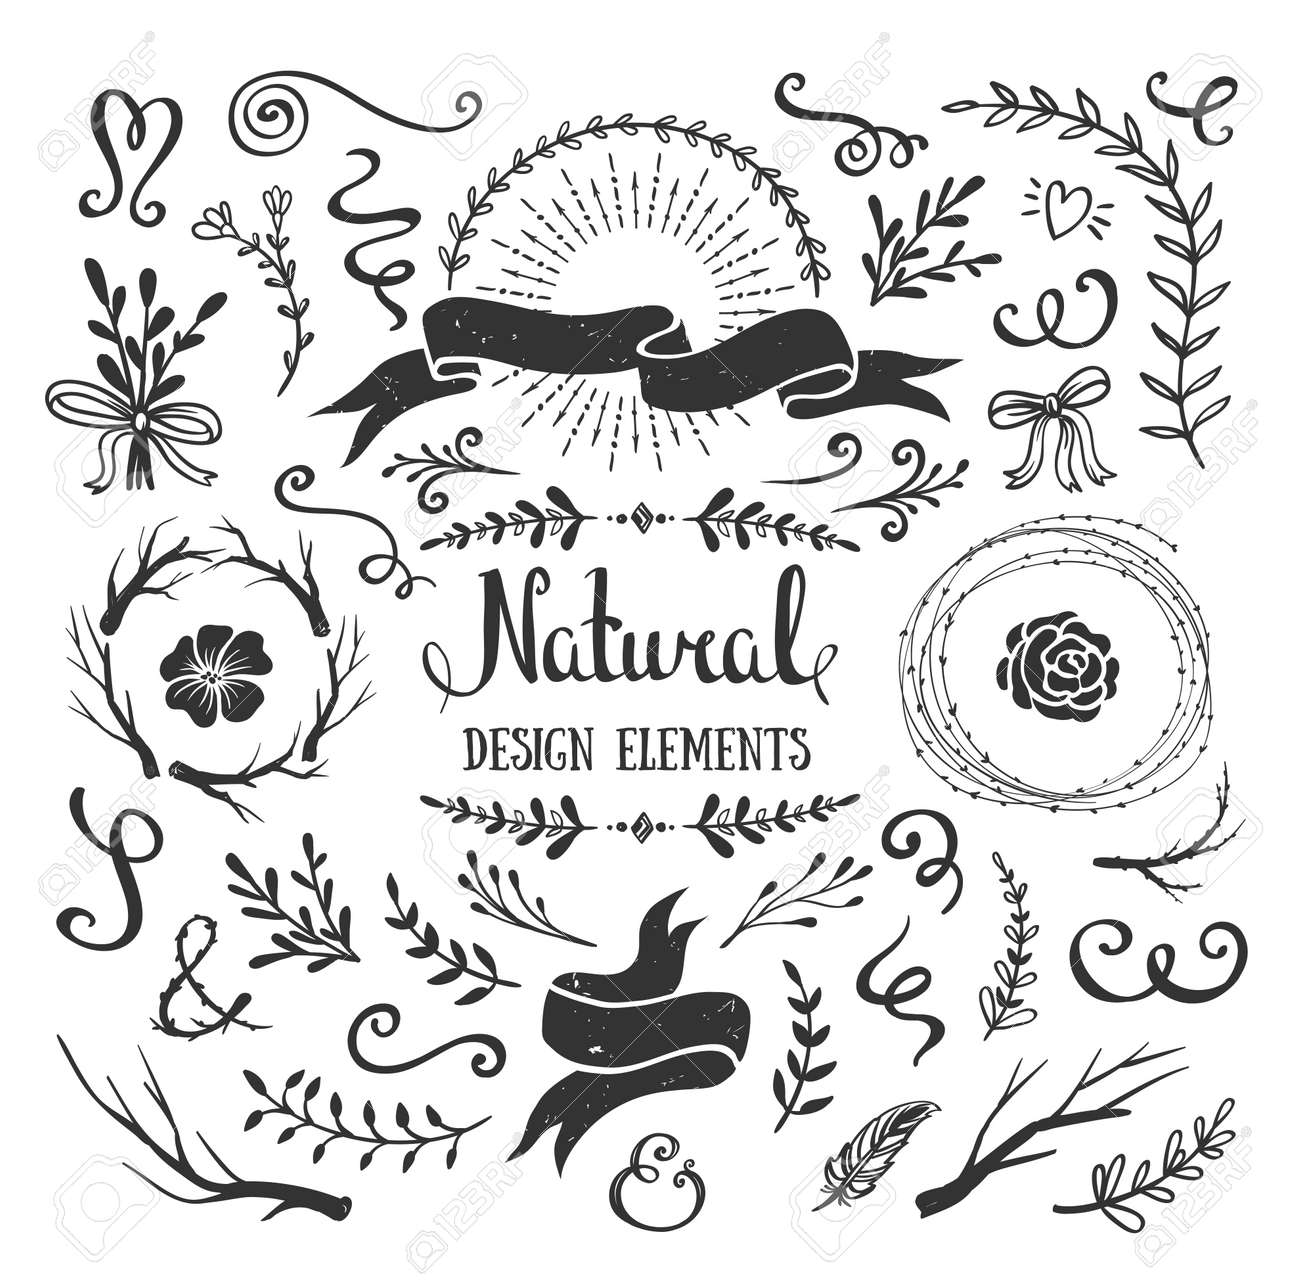 Vintage Graphic Set Of Flowers Branches Leafs And Rustic Design Elements Isolated Floral